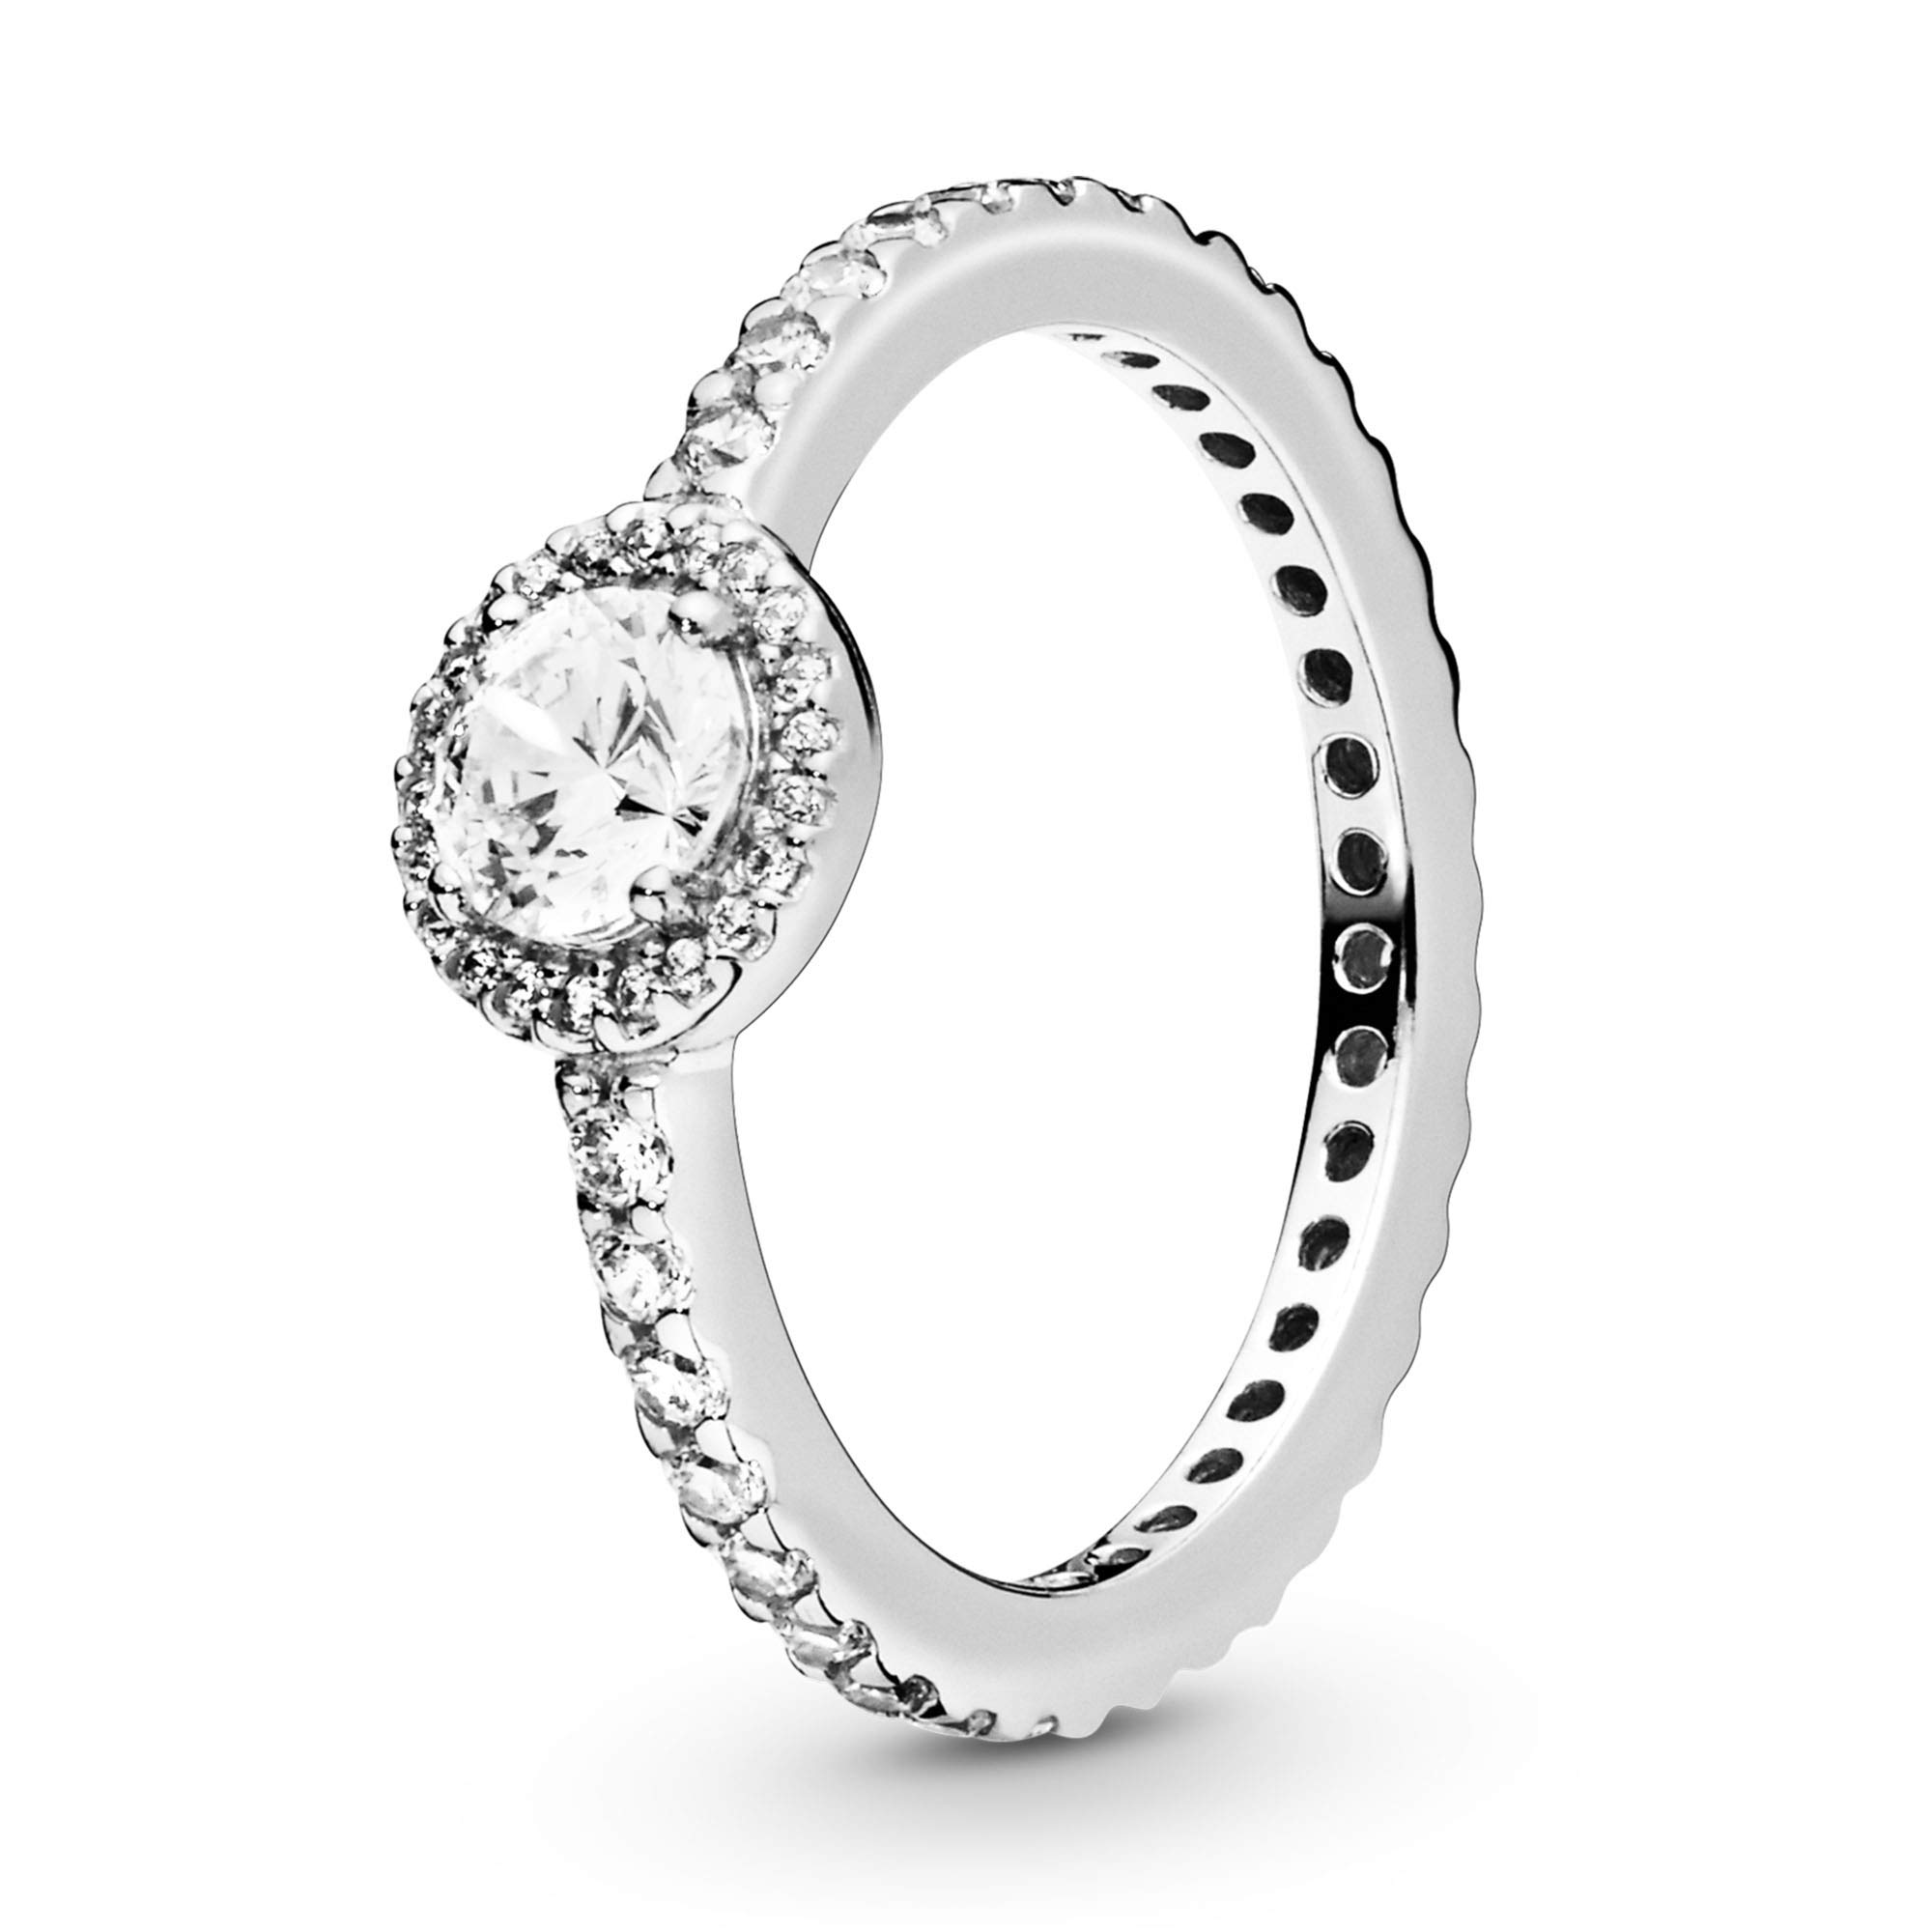 Pandora Jewelry Classic Sparkle Halo Cubic Zirconia Ring in Sterling Silver, Size 9